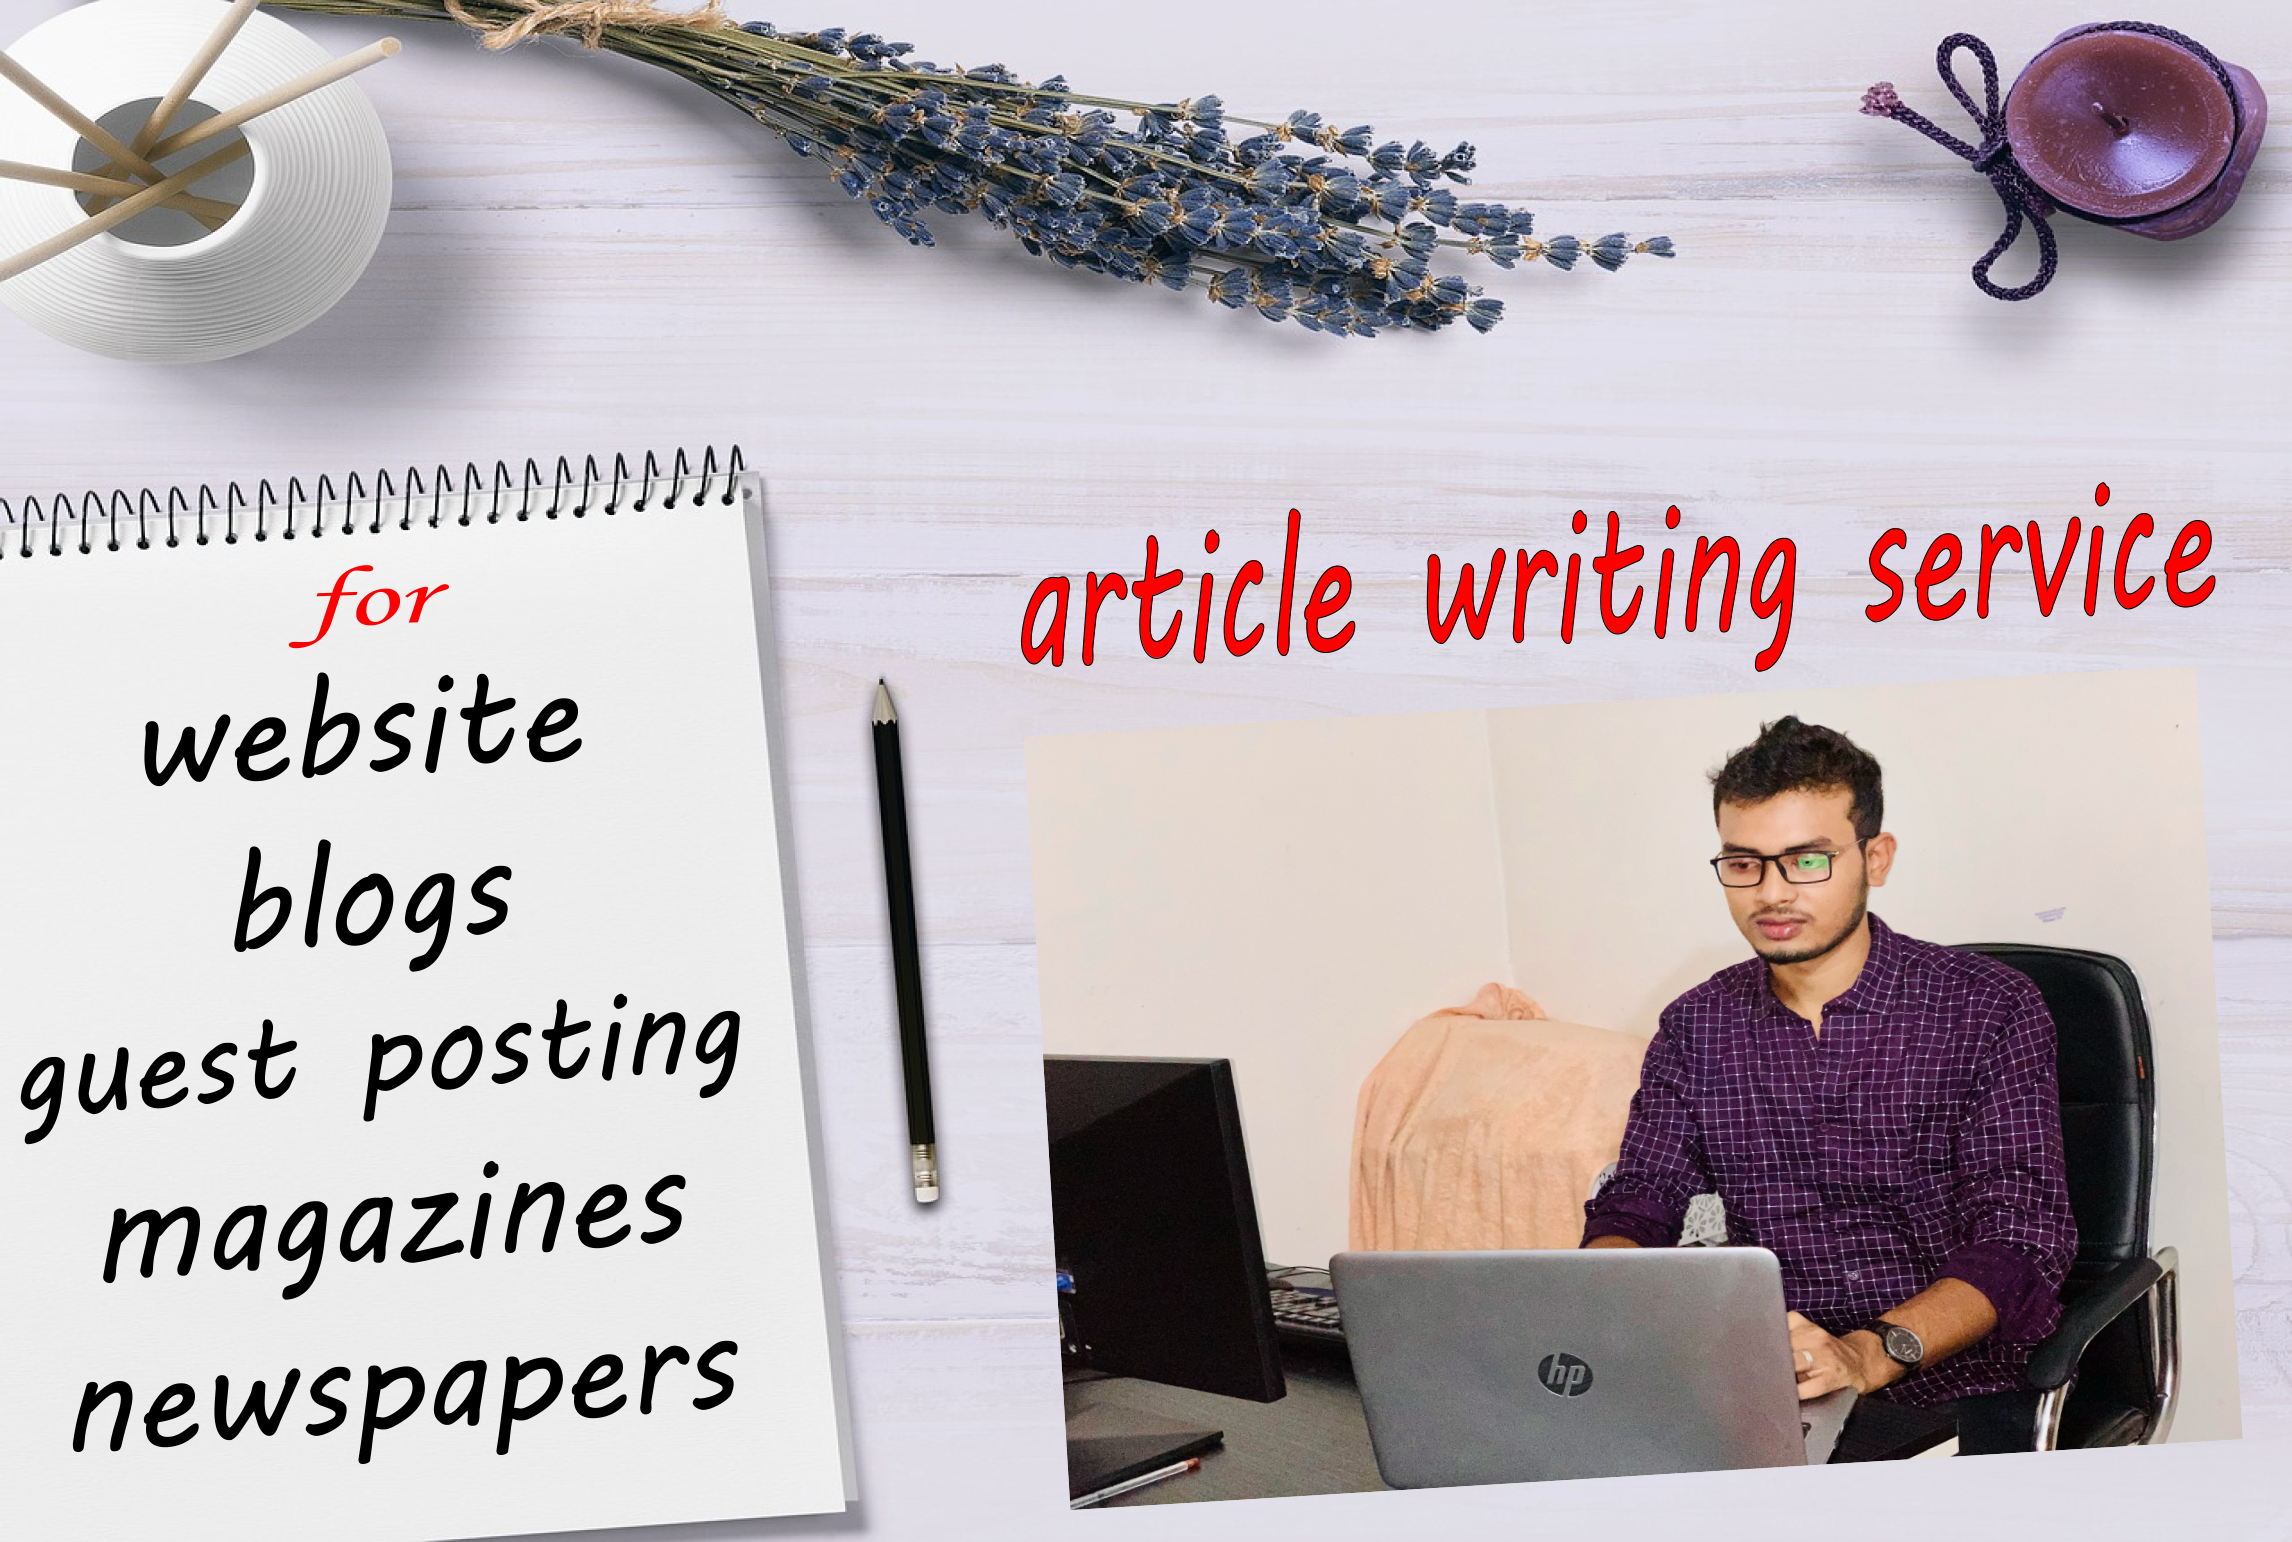 I provide best quality SEO optimized article or blog post up to 700 words